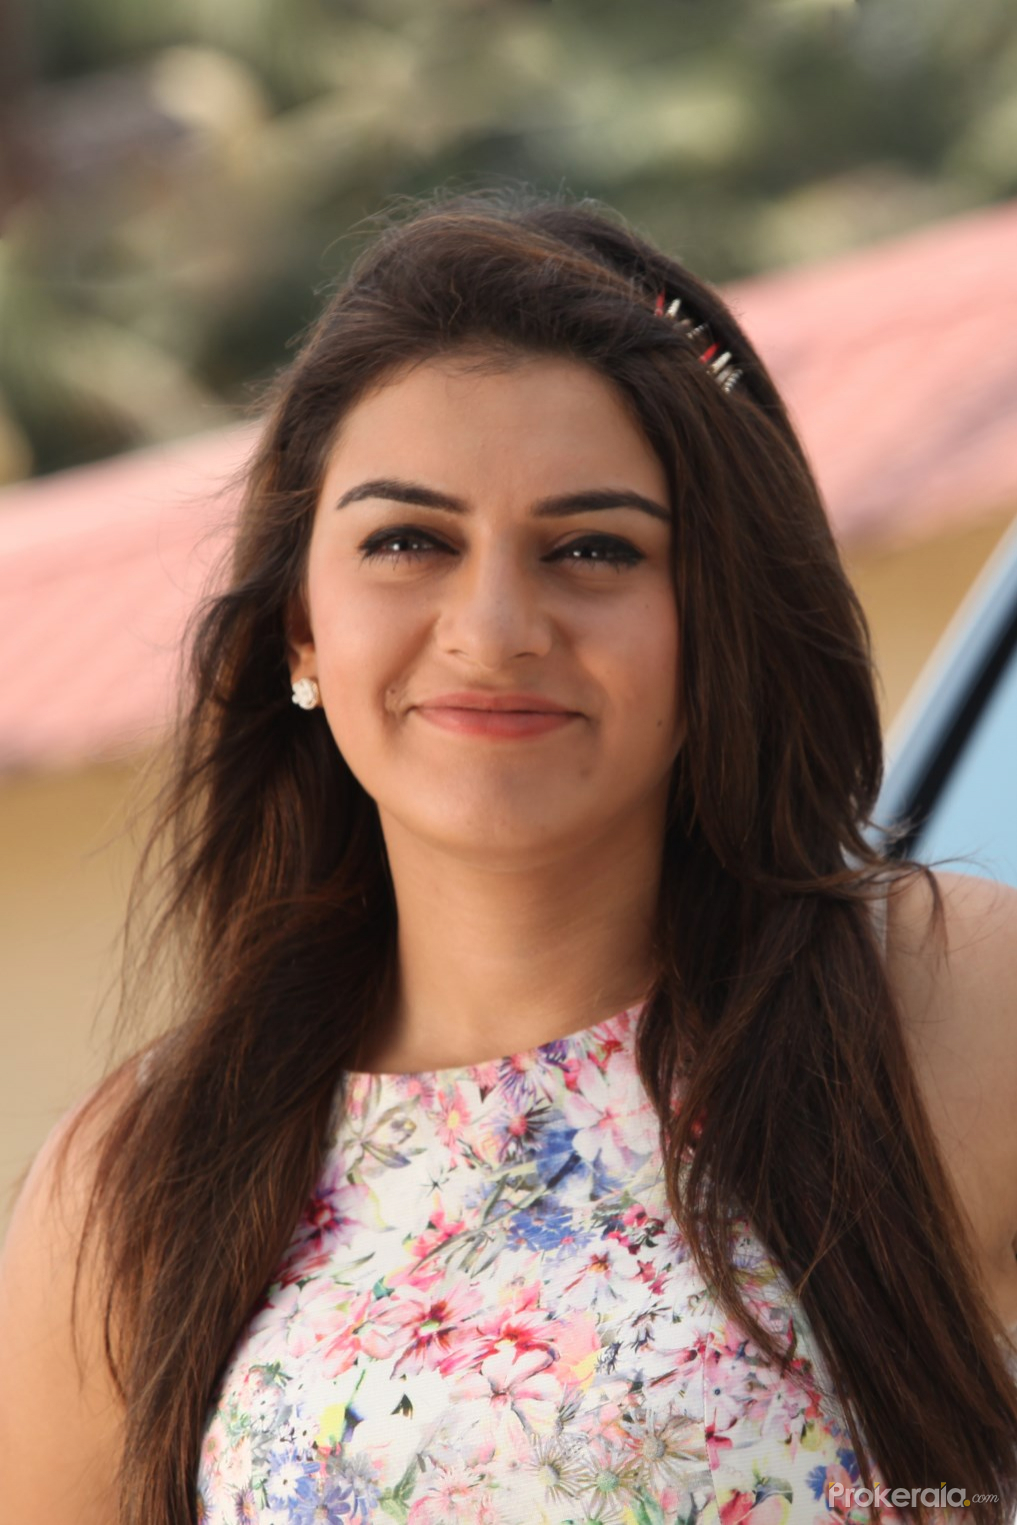 hansika in movie romeo juliet still # 7